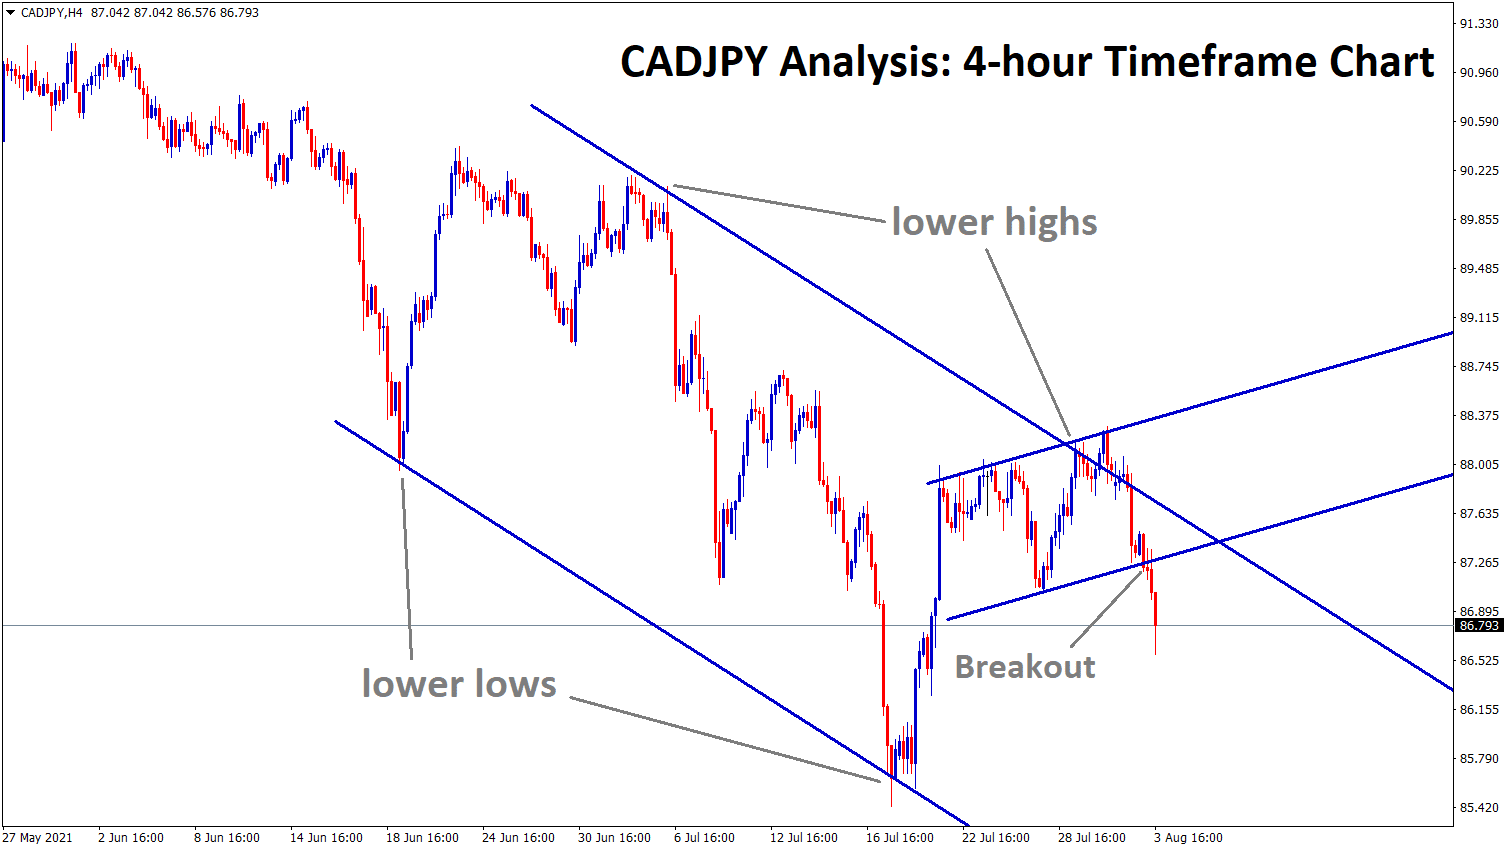 CADJPY starts to move in a descending channel breaking the minor range